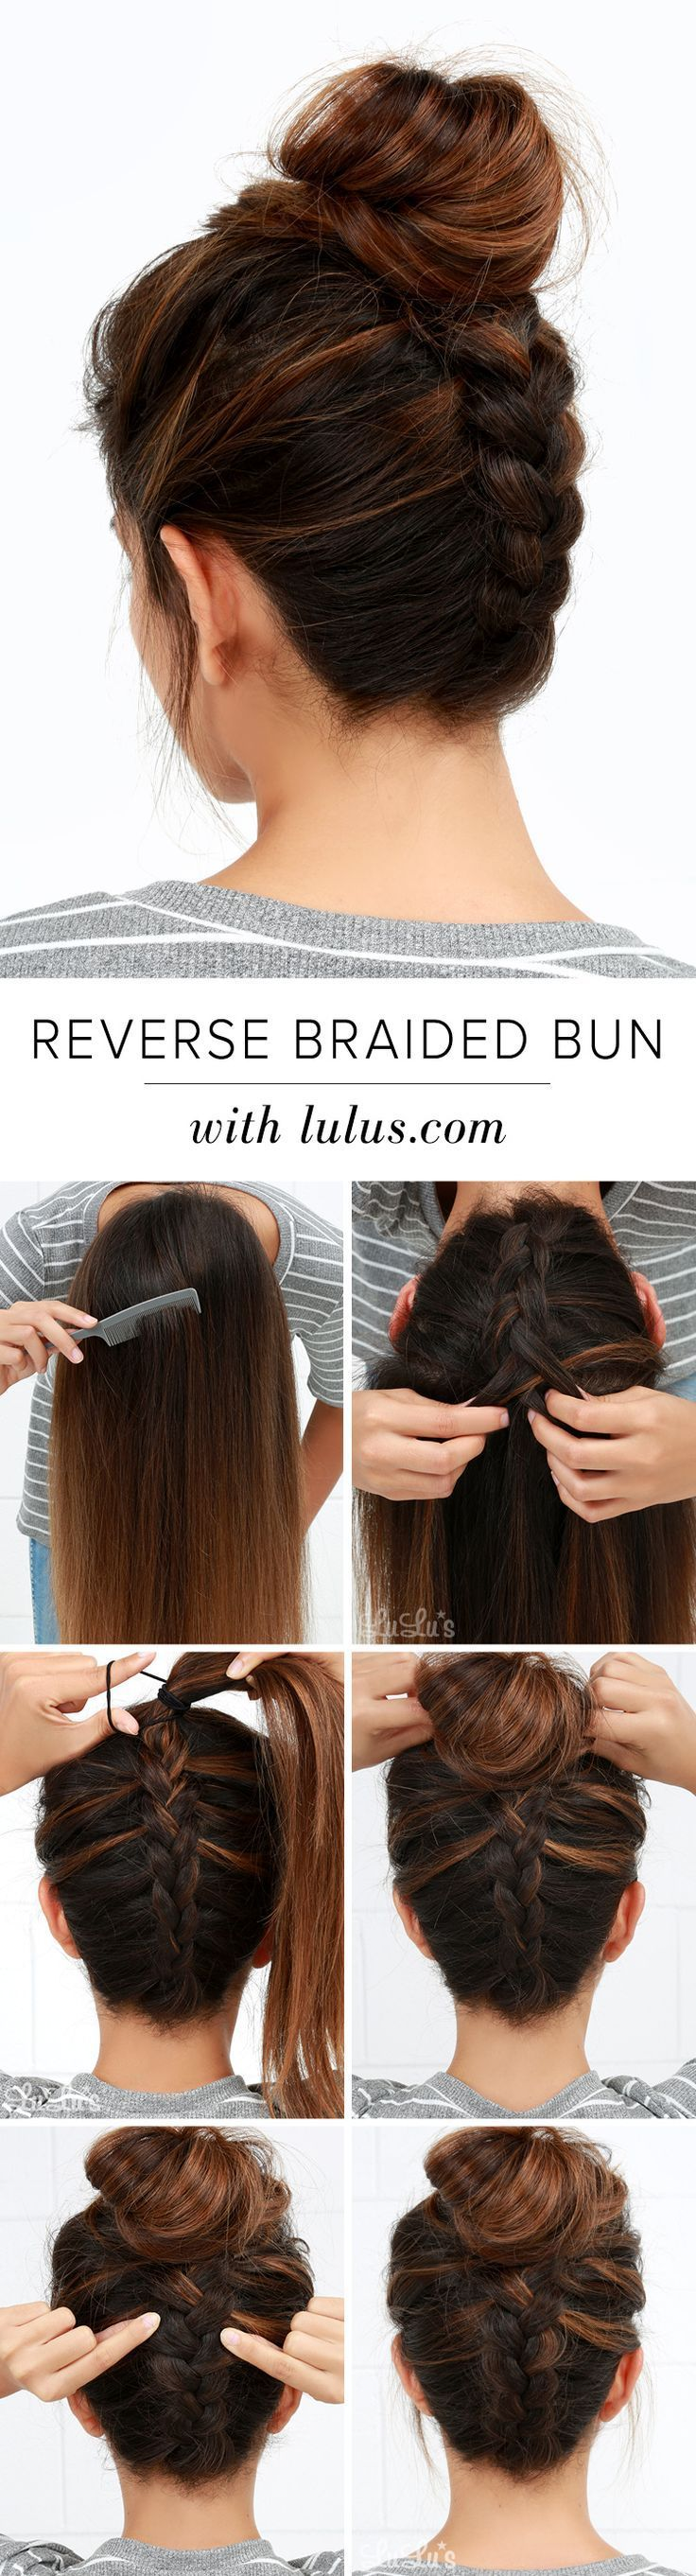 nice LuLu*s How-To: Reverse Braided Bun Hair Tutorial by http://www.dana-hairstyles.xyz/hair-tutorials/lulus-how-to-reverse-braided-bun-hair-tutorial/